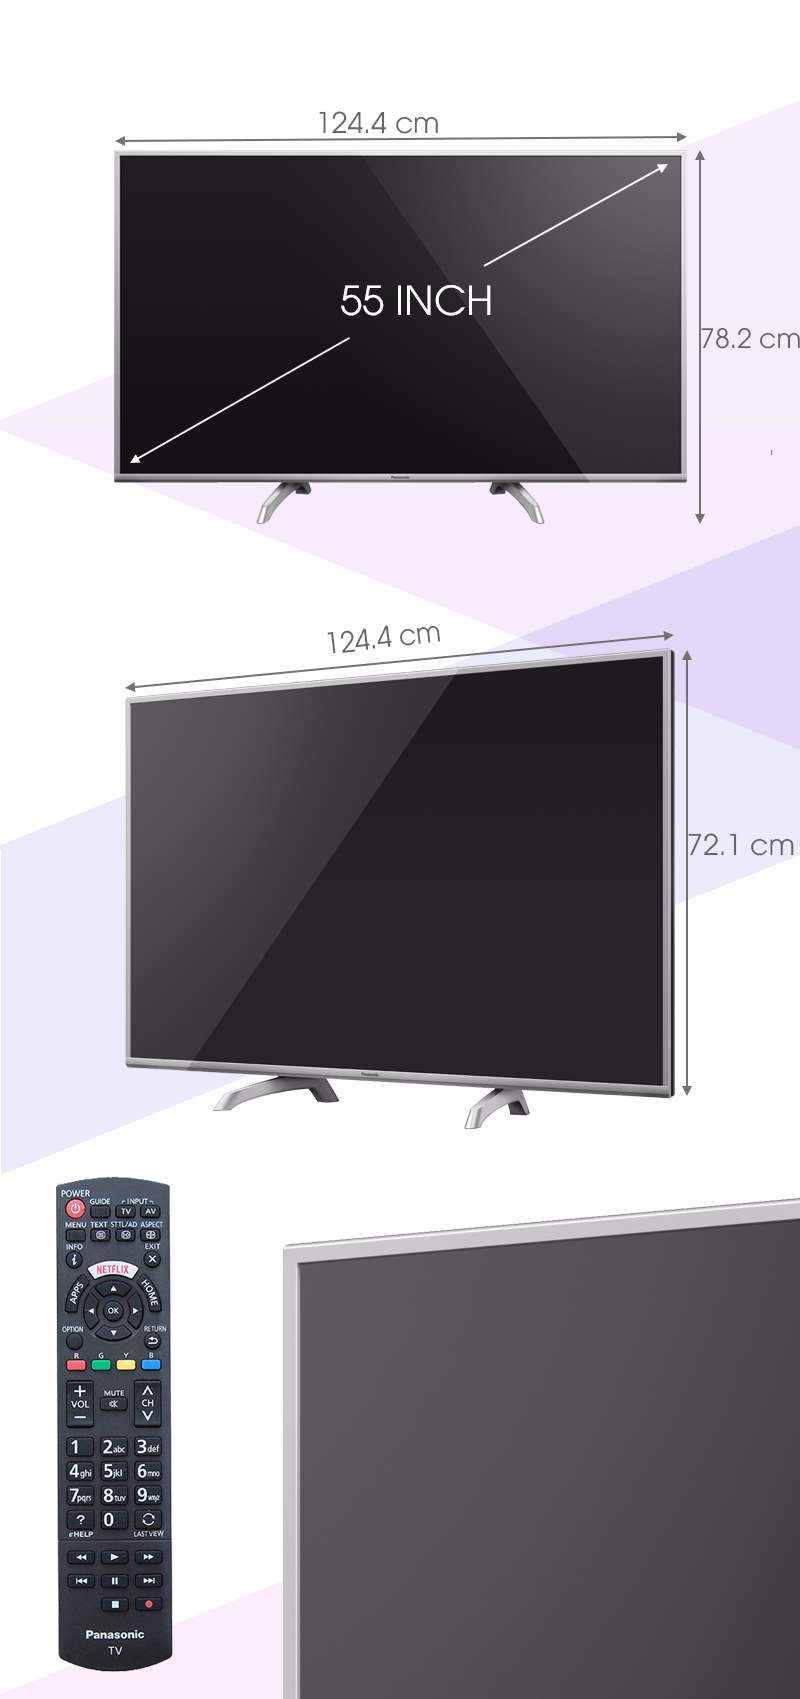 Smart Tivi Panasonic 55 inch TH-55DS630V